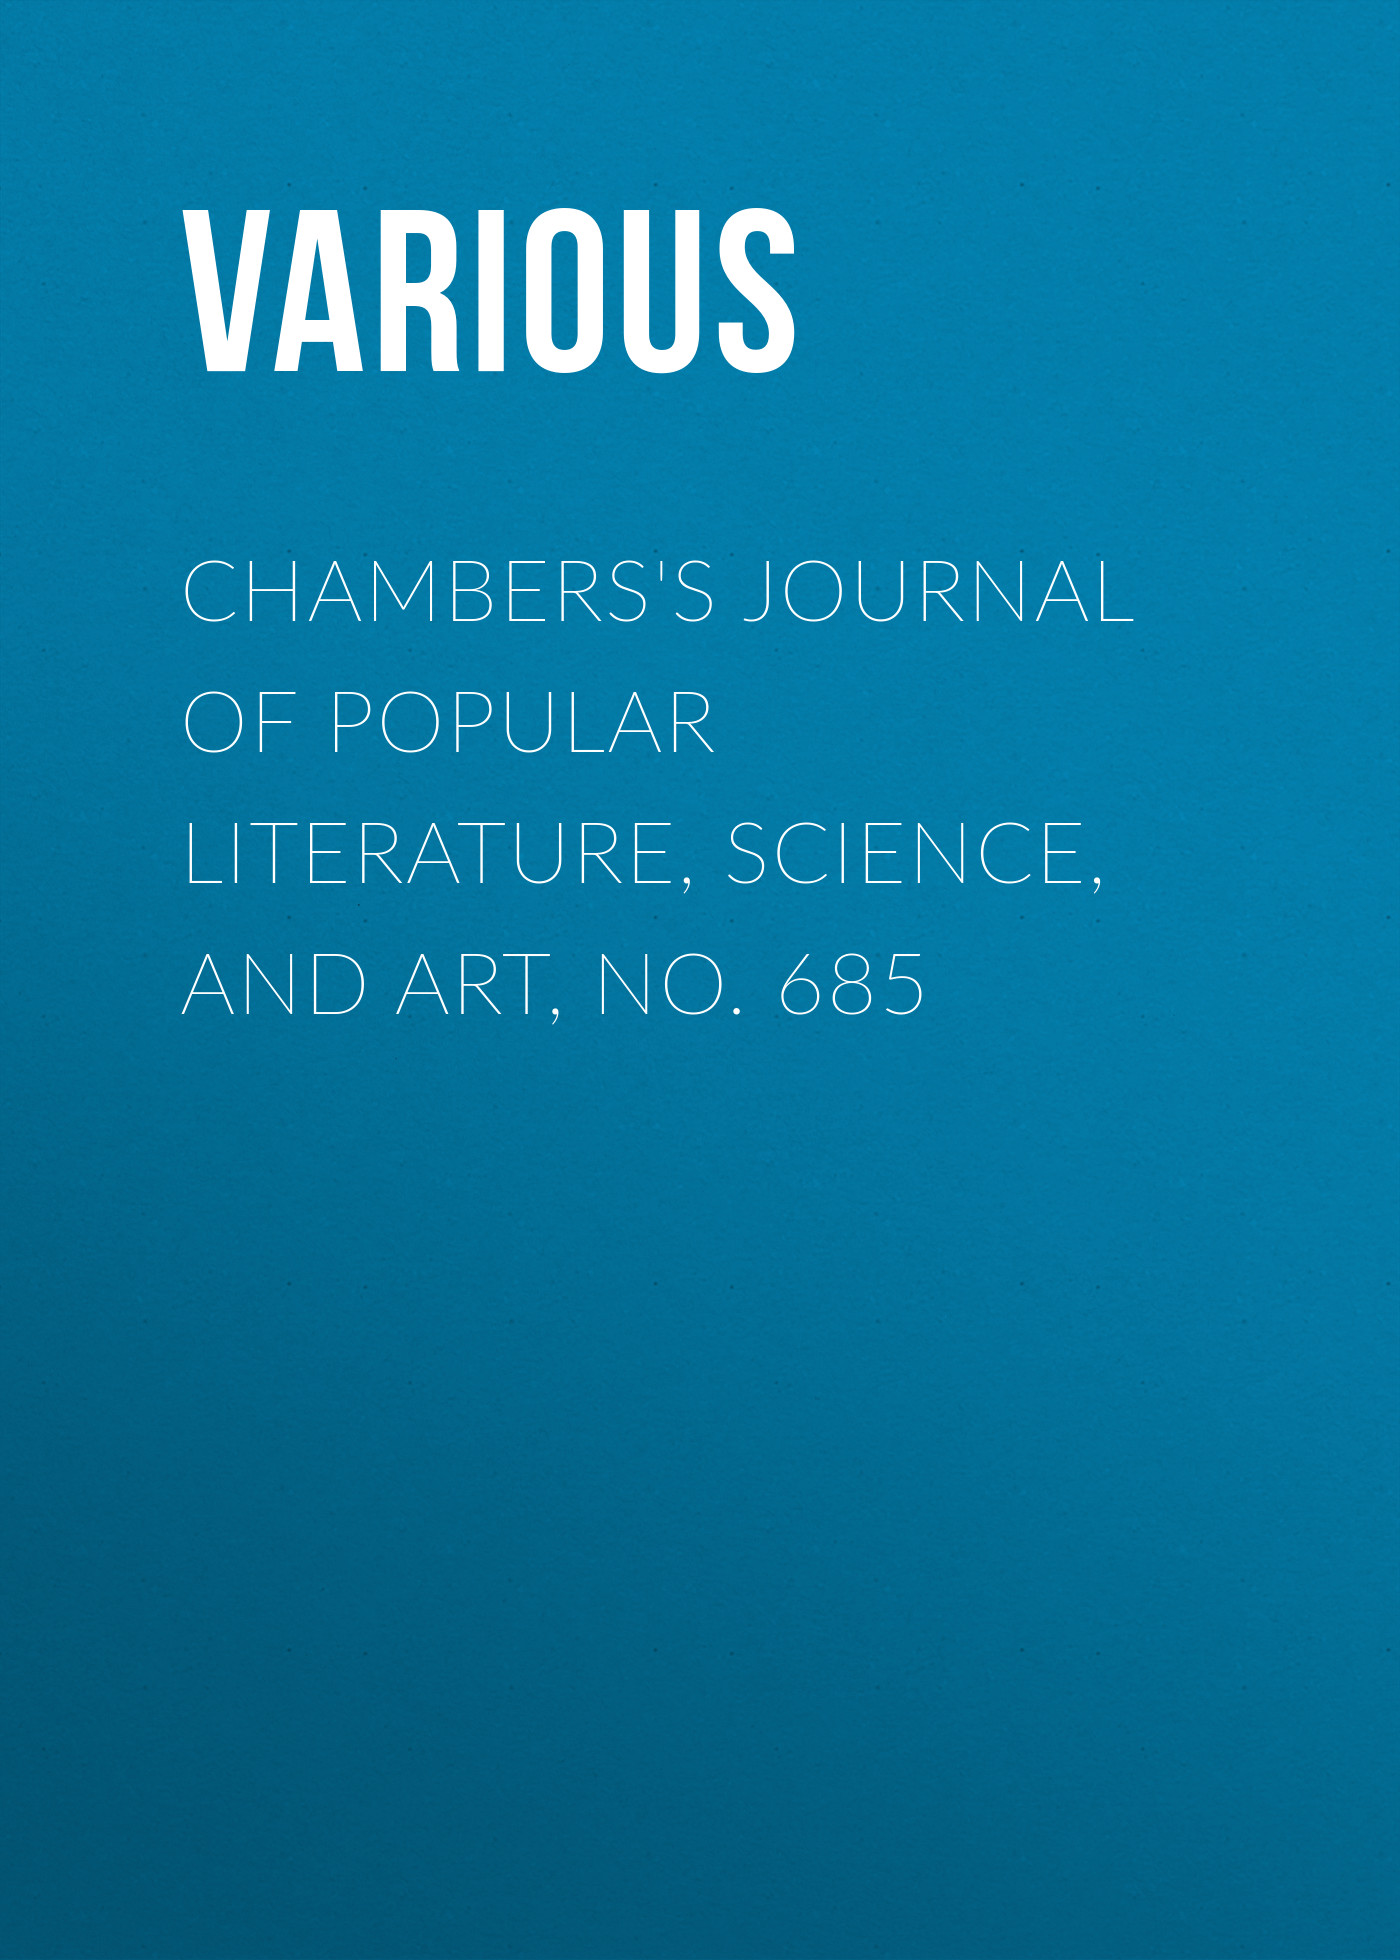 Chambers's Journal of Popular Literature, Science, and Art, No. 685